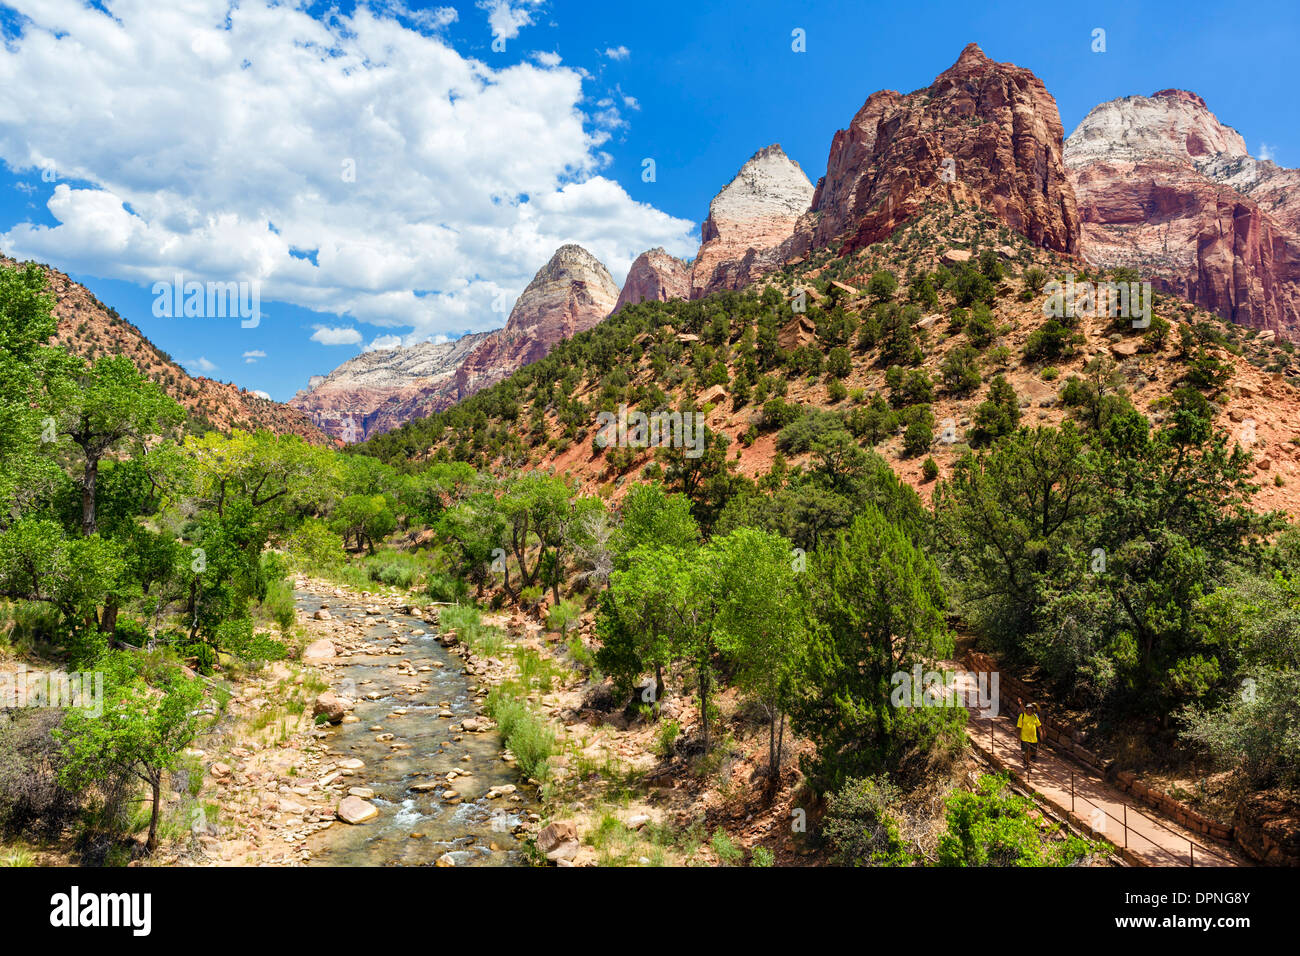 Virgin River viewed from bridge on Zion-Mount Carmel Highway (SR 9) with Par'us trail to right, Zion National Park, Utah, USA - Stock Image